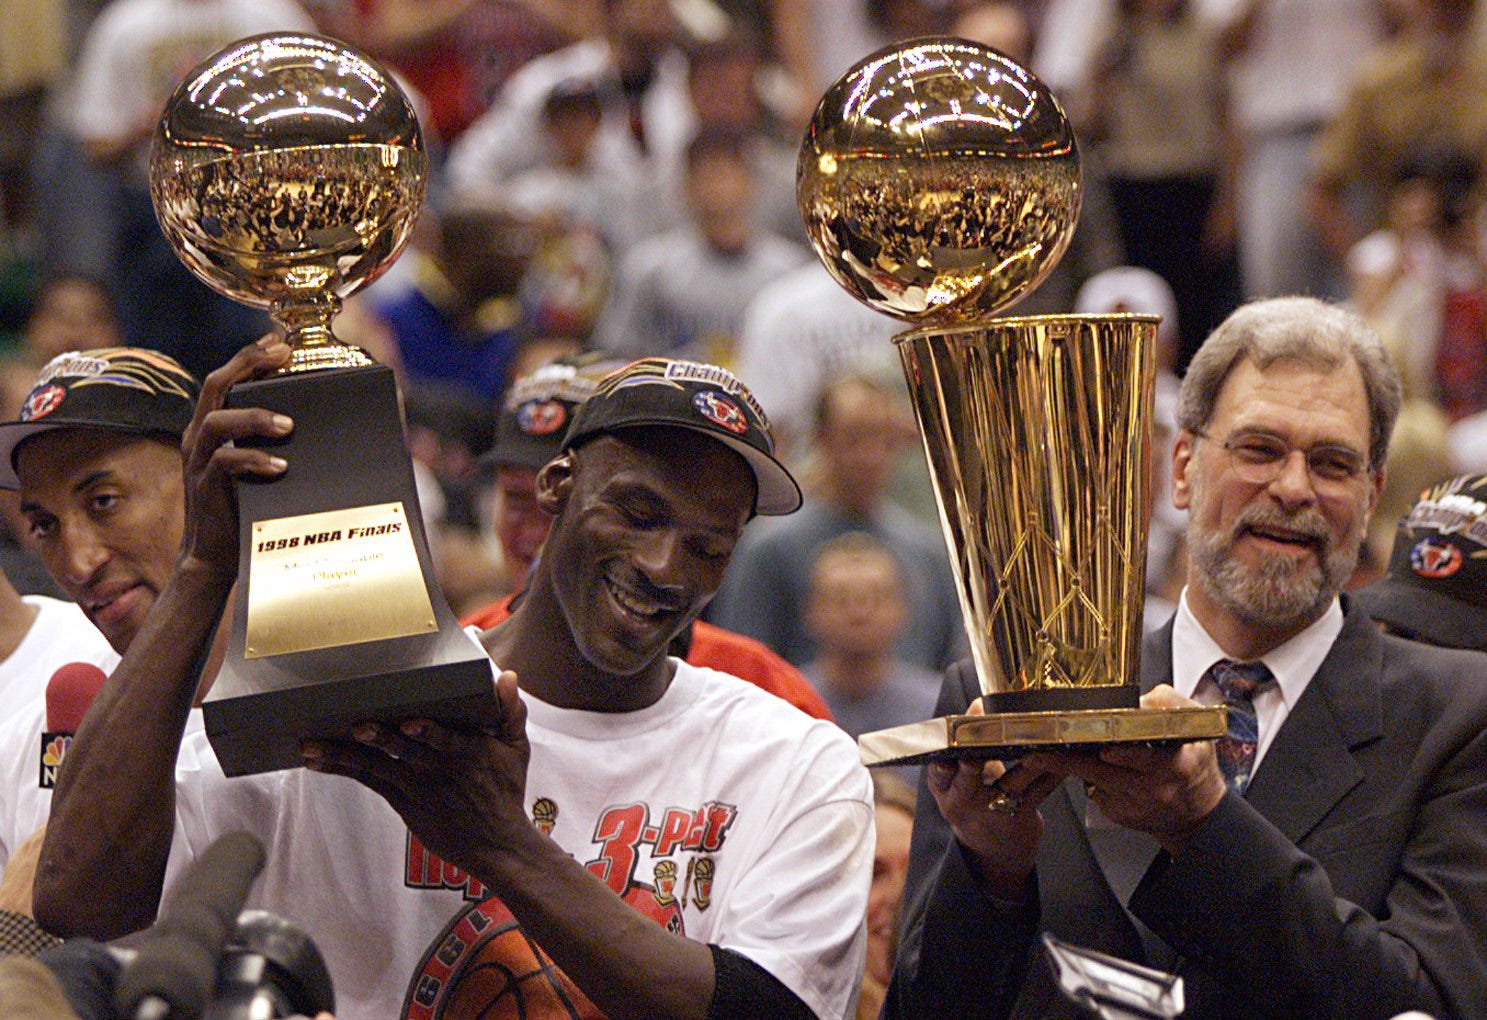 The Last Dance : A look back at Michael Jordan and the Bulls  1997-98 championship season